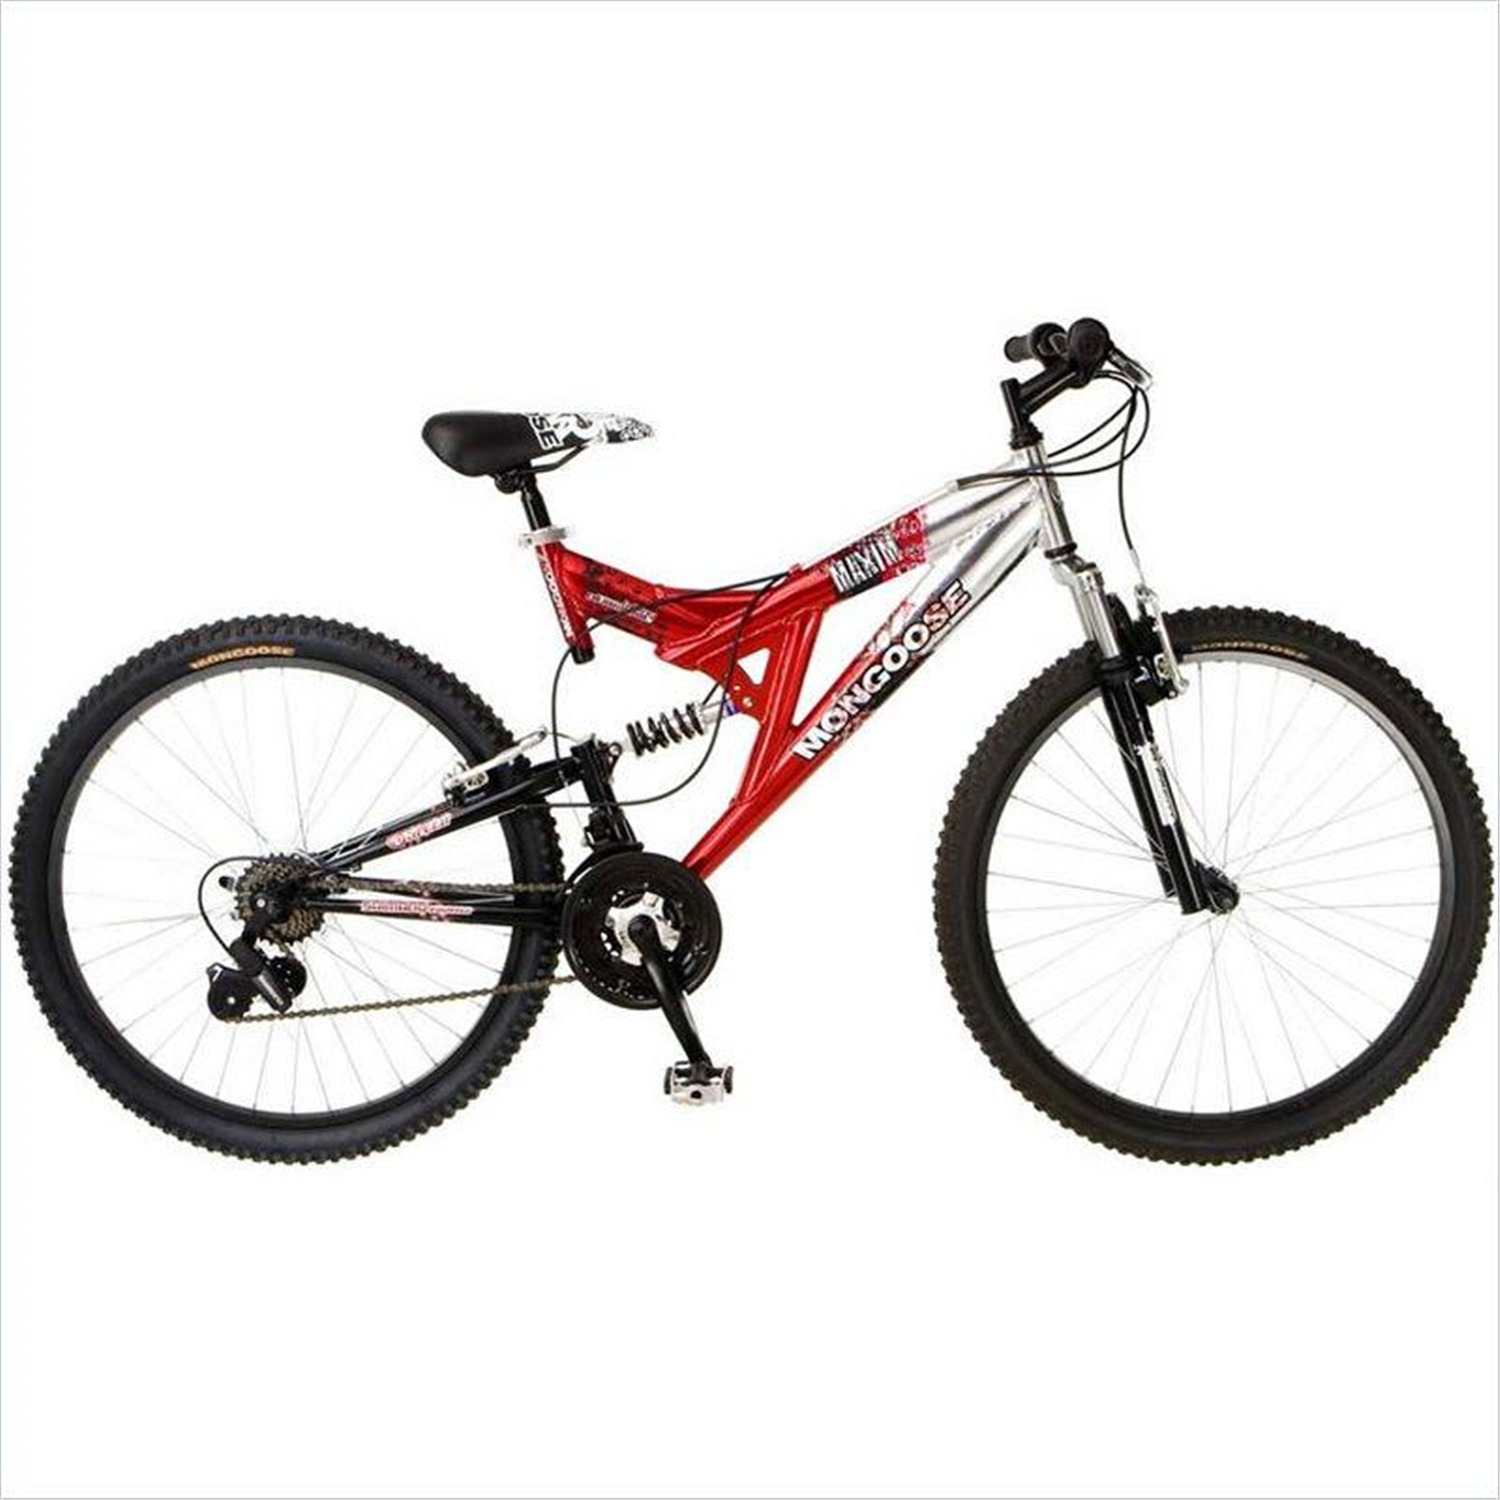 Boys/Men's Bicycle: MGX Mongoose, 24 speed, Silver and